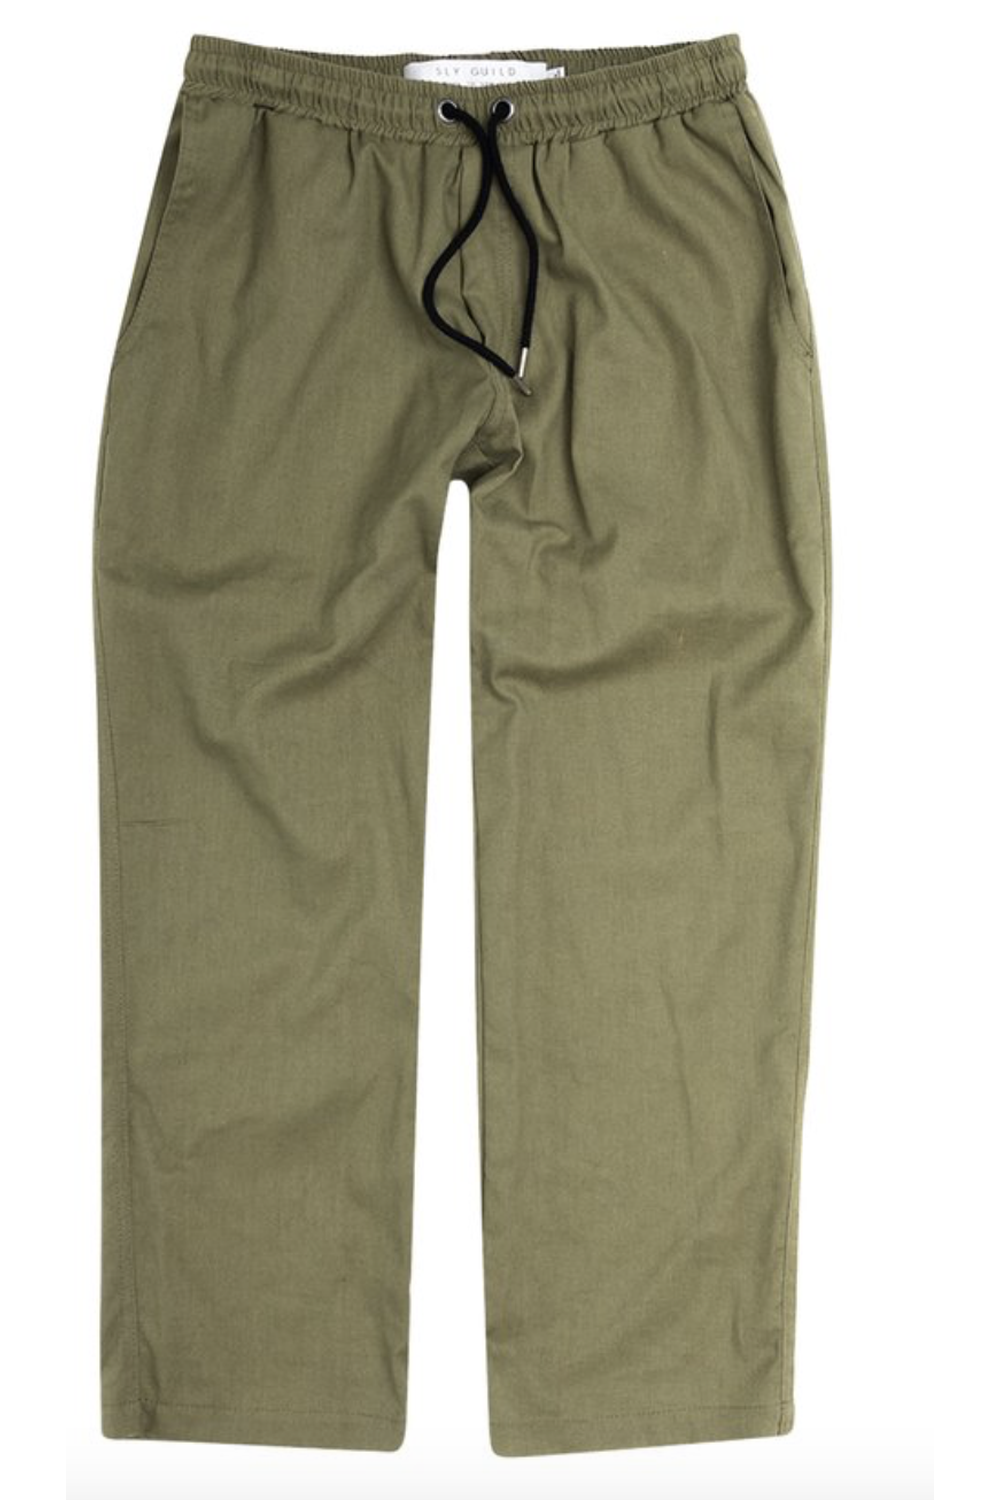 Yoone Linen Pant / Khaki | Sly Guild | Mad About The Boy